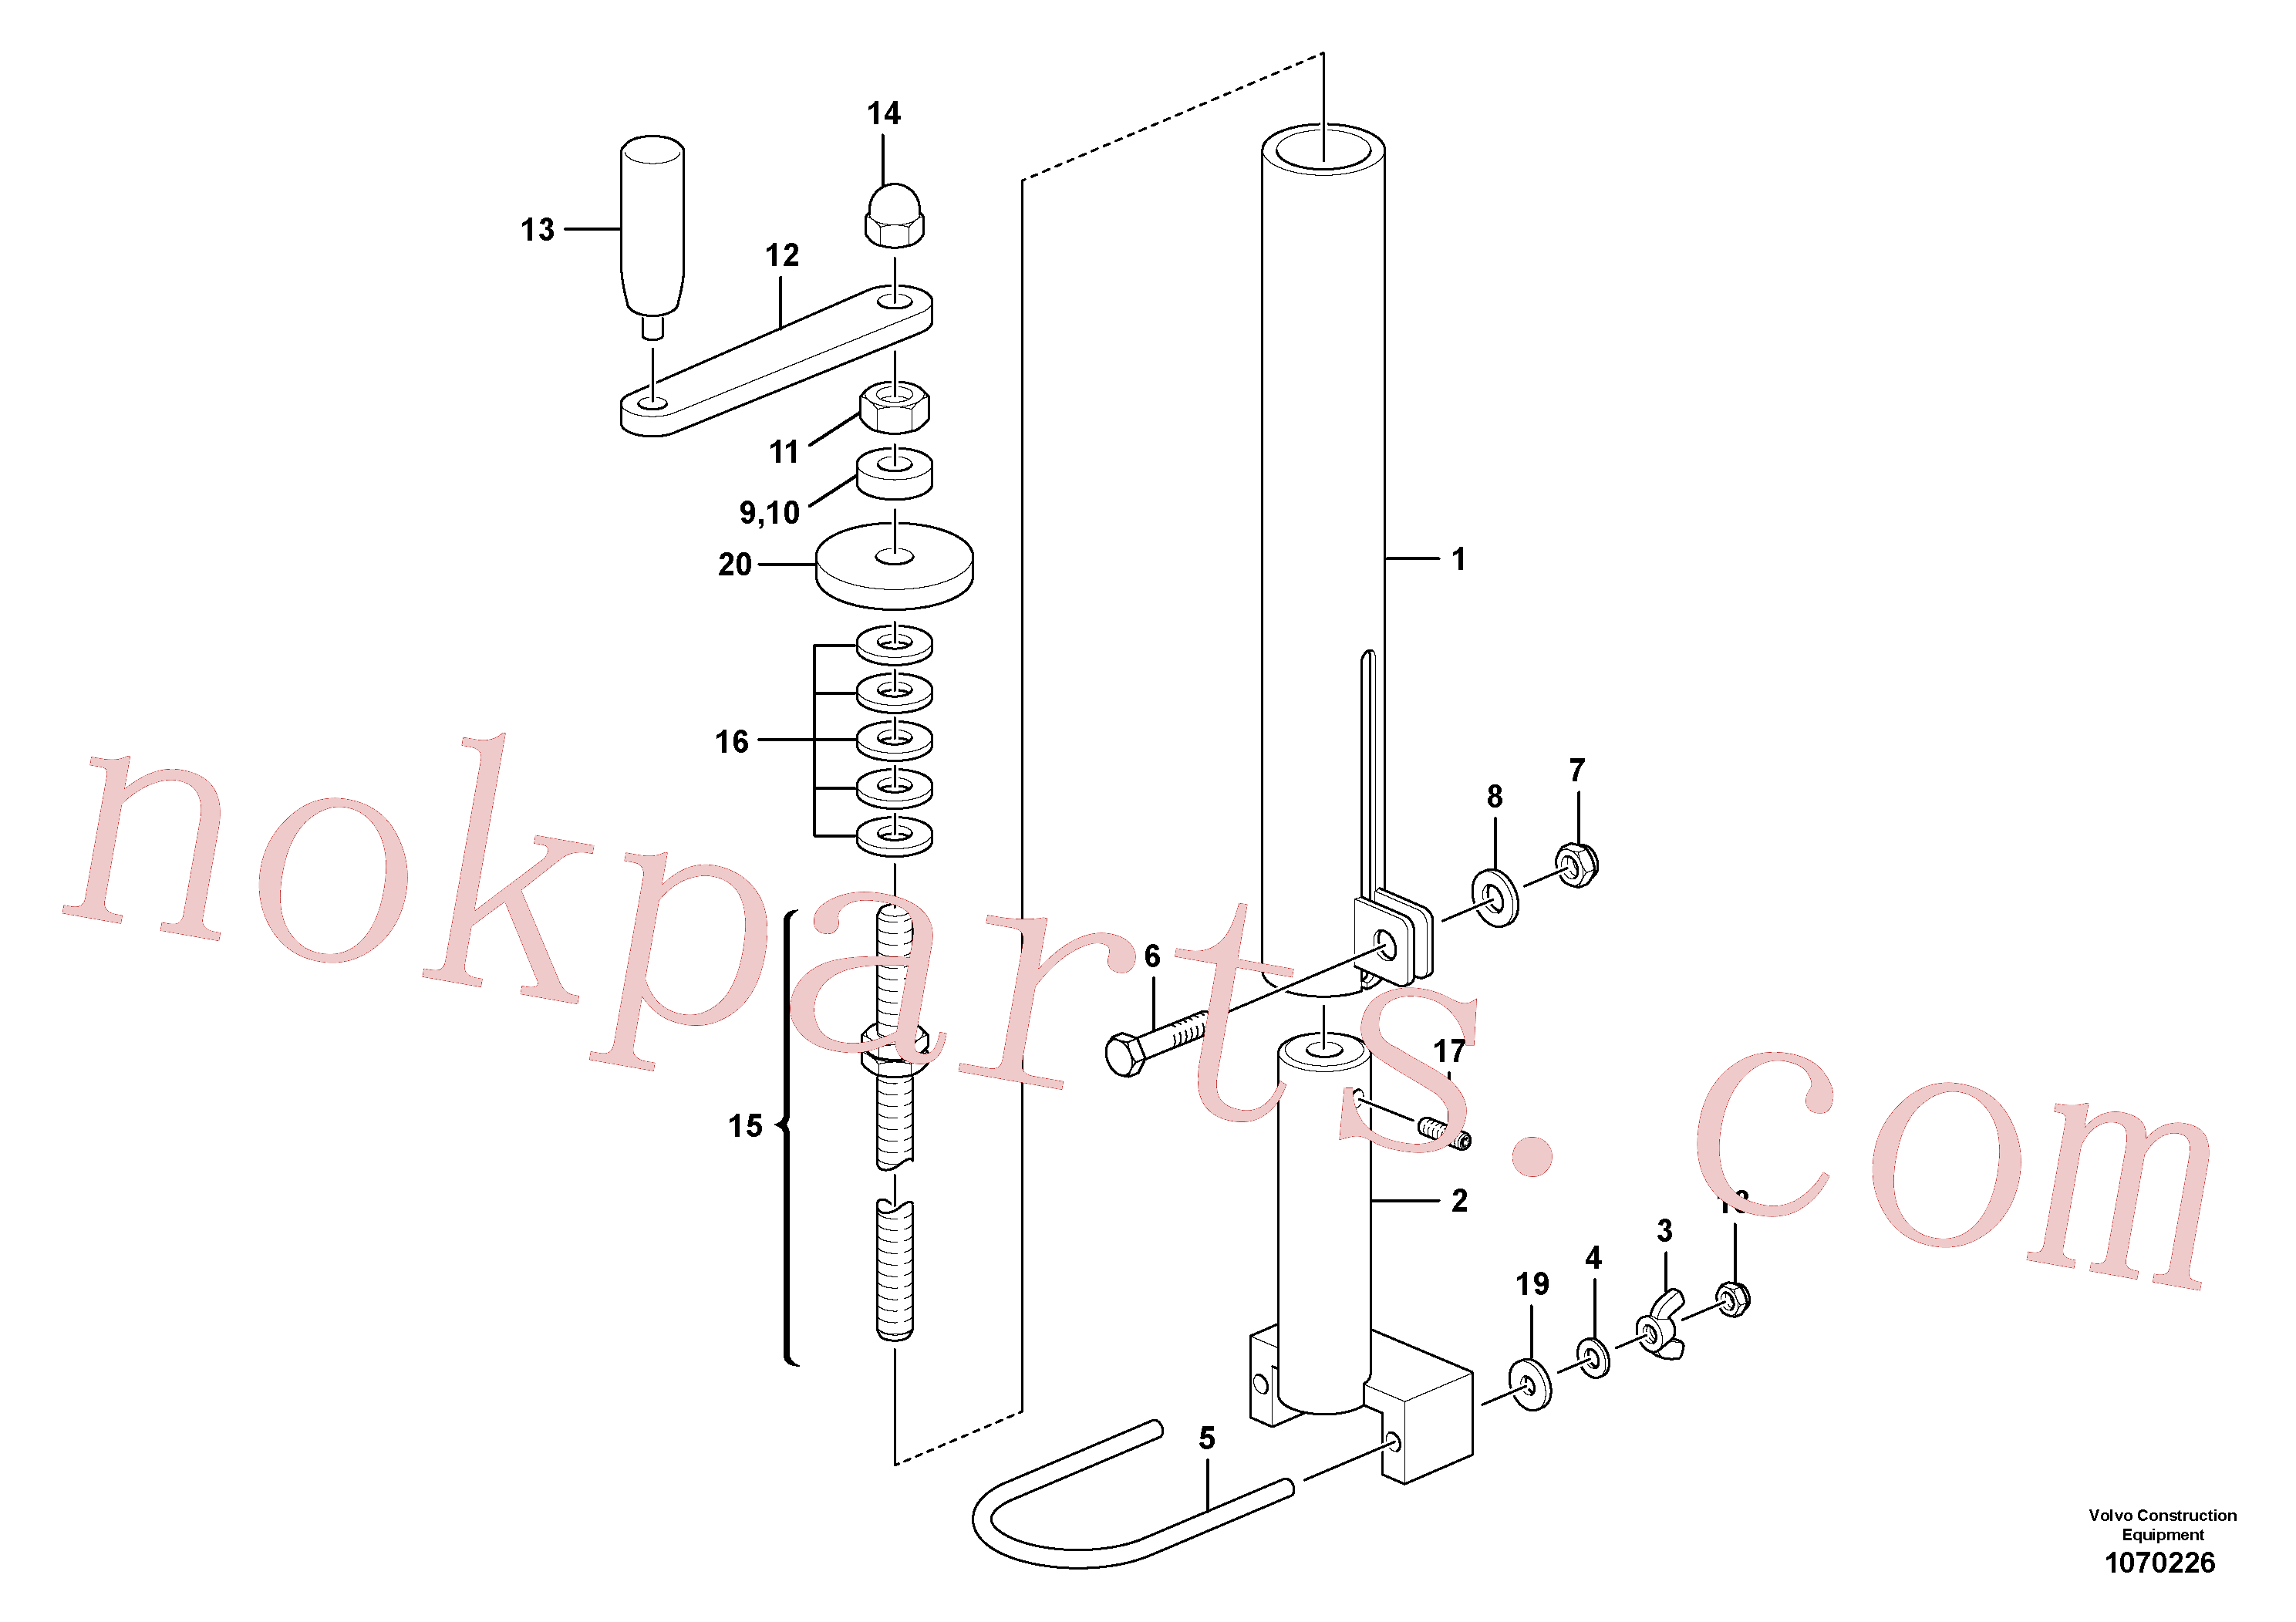 RM80811615 for Volvo Mechanical Control Assembly(1070226 assembly)